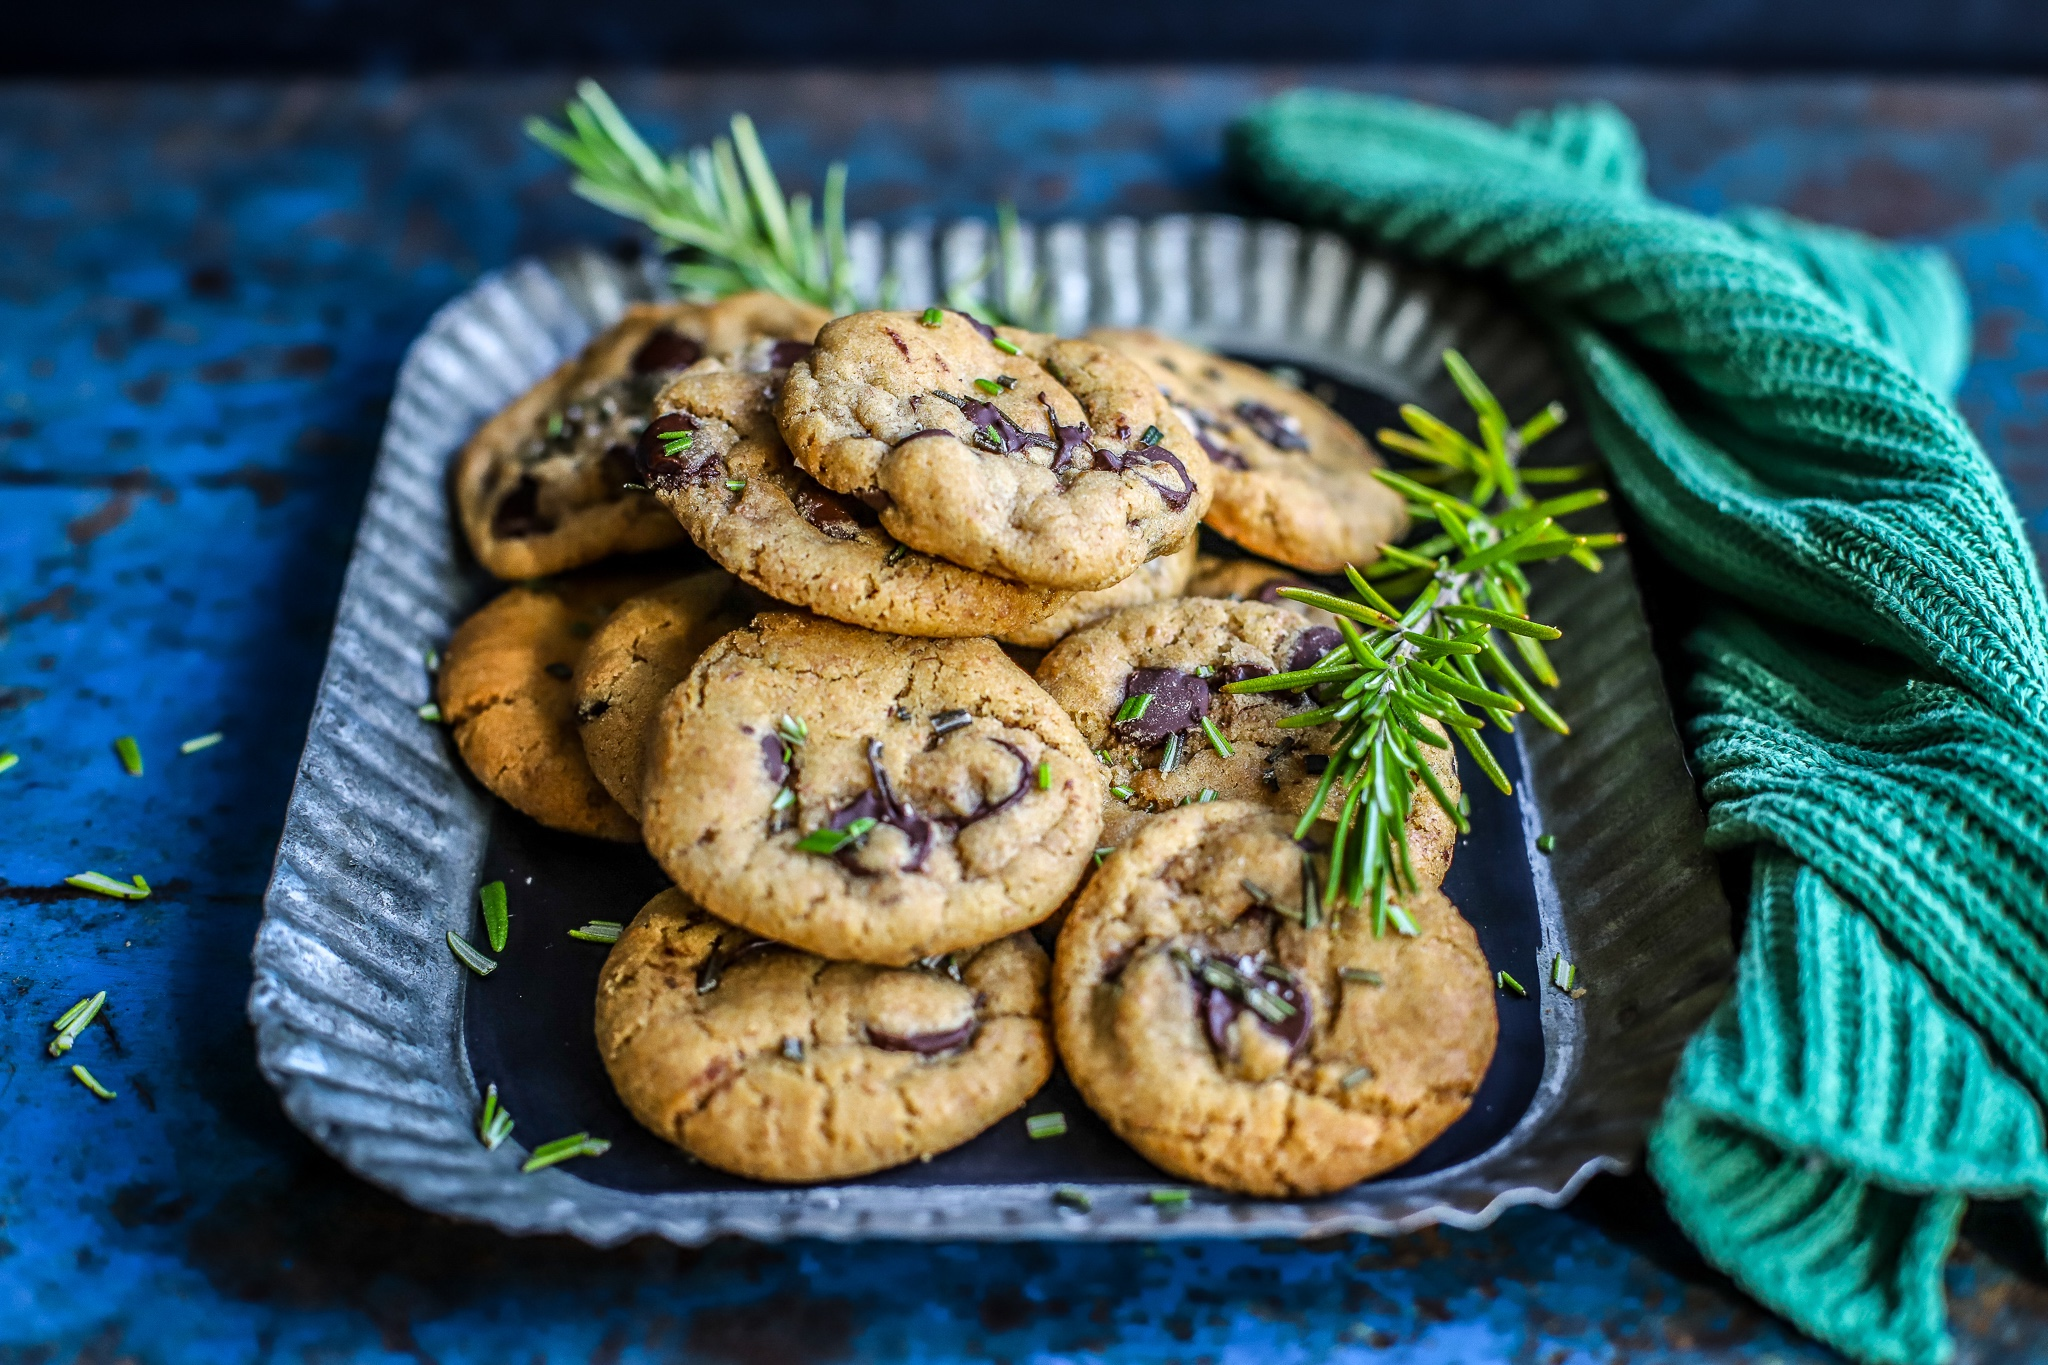 chocolate chip cookies on metal tray with dark background